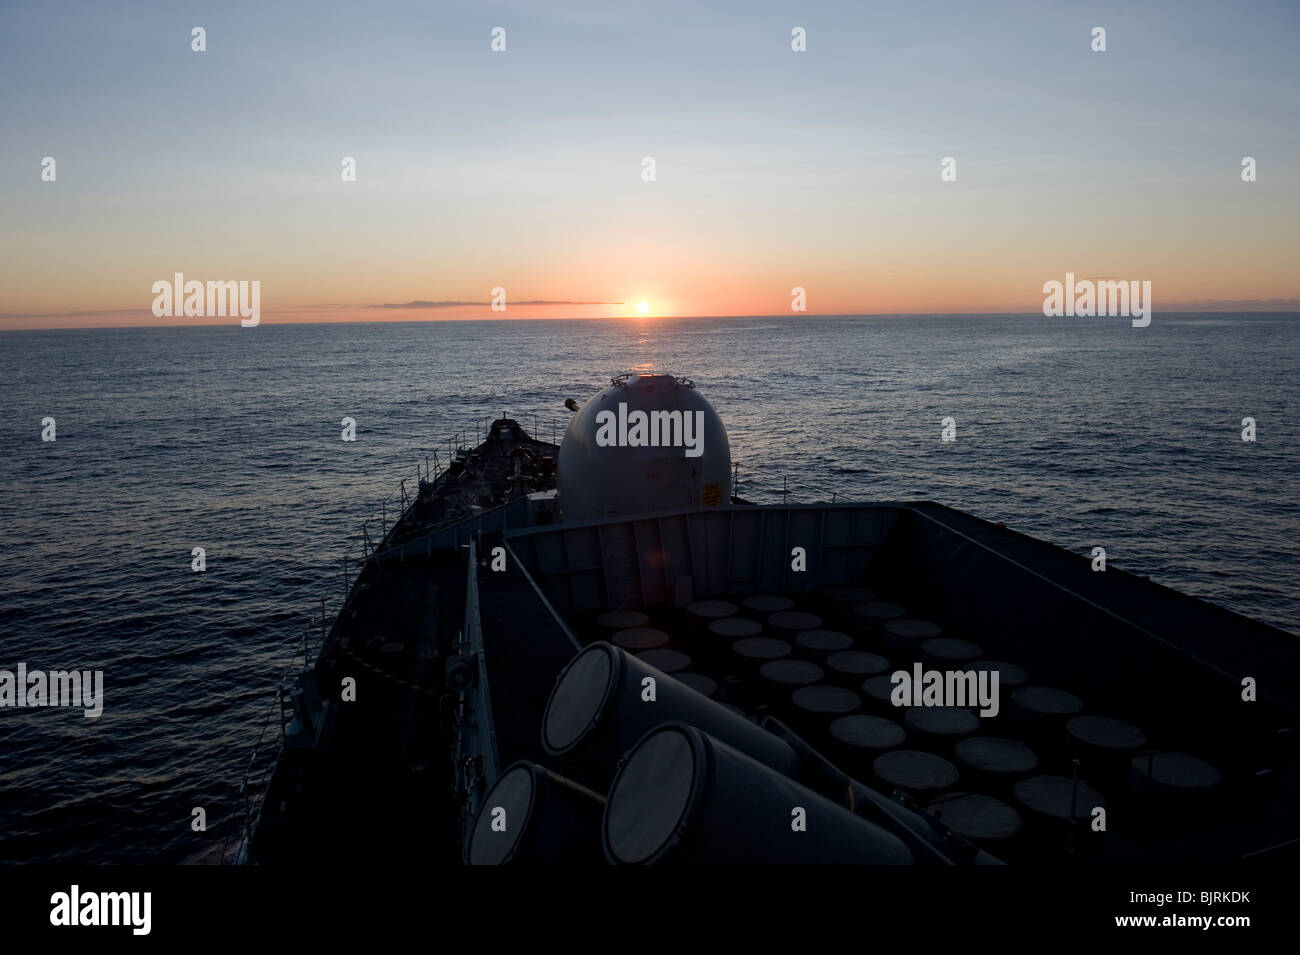 Bow of Royal Navy Type 23 frigate - sunset at sea - Stock Image